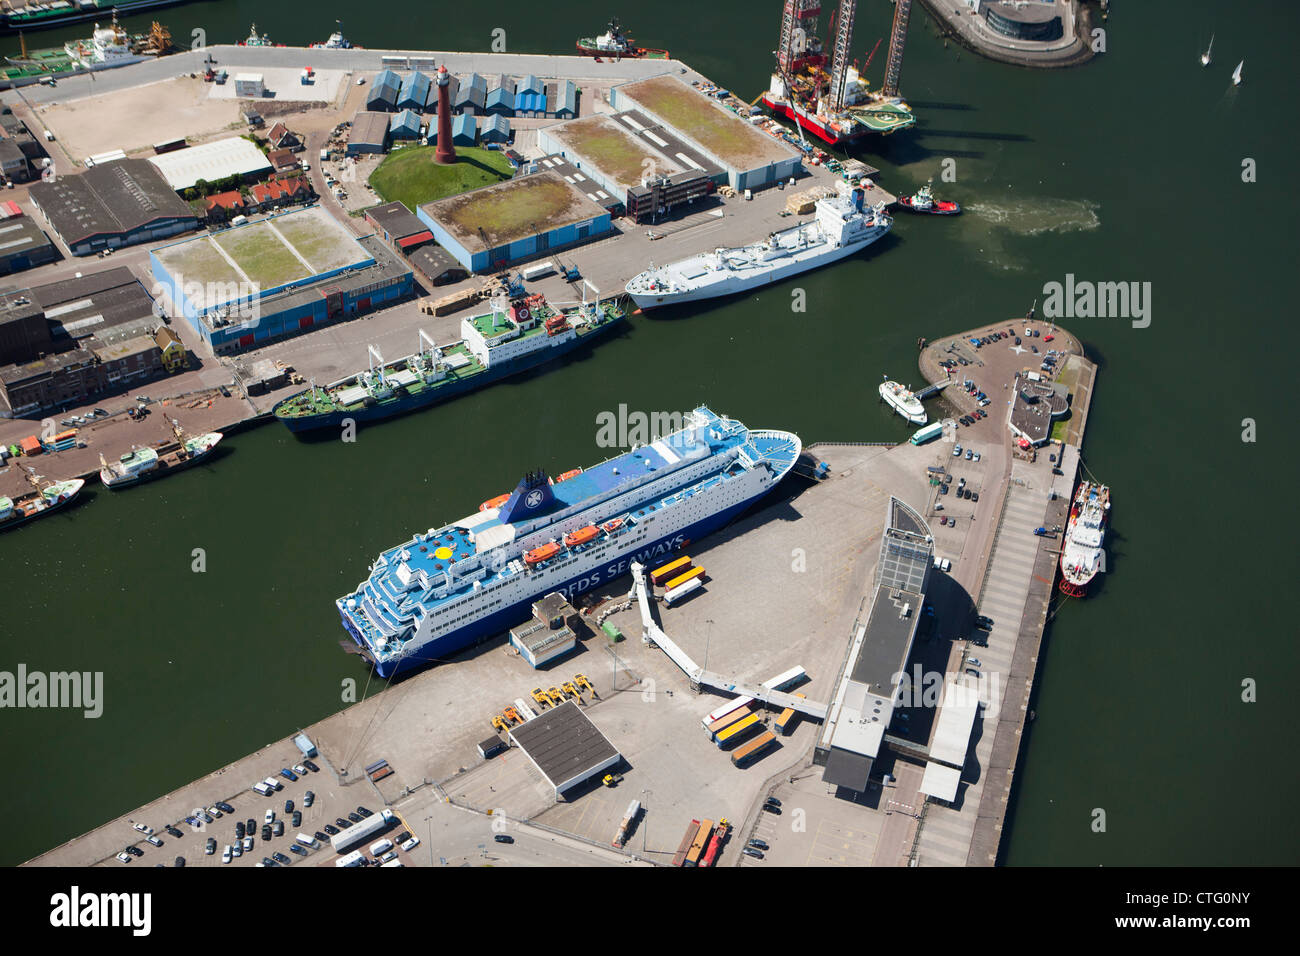 The Netherlands, IJmuiden, Aerial, Harbor. Port. DFDS Ferry boat. - Stock Image